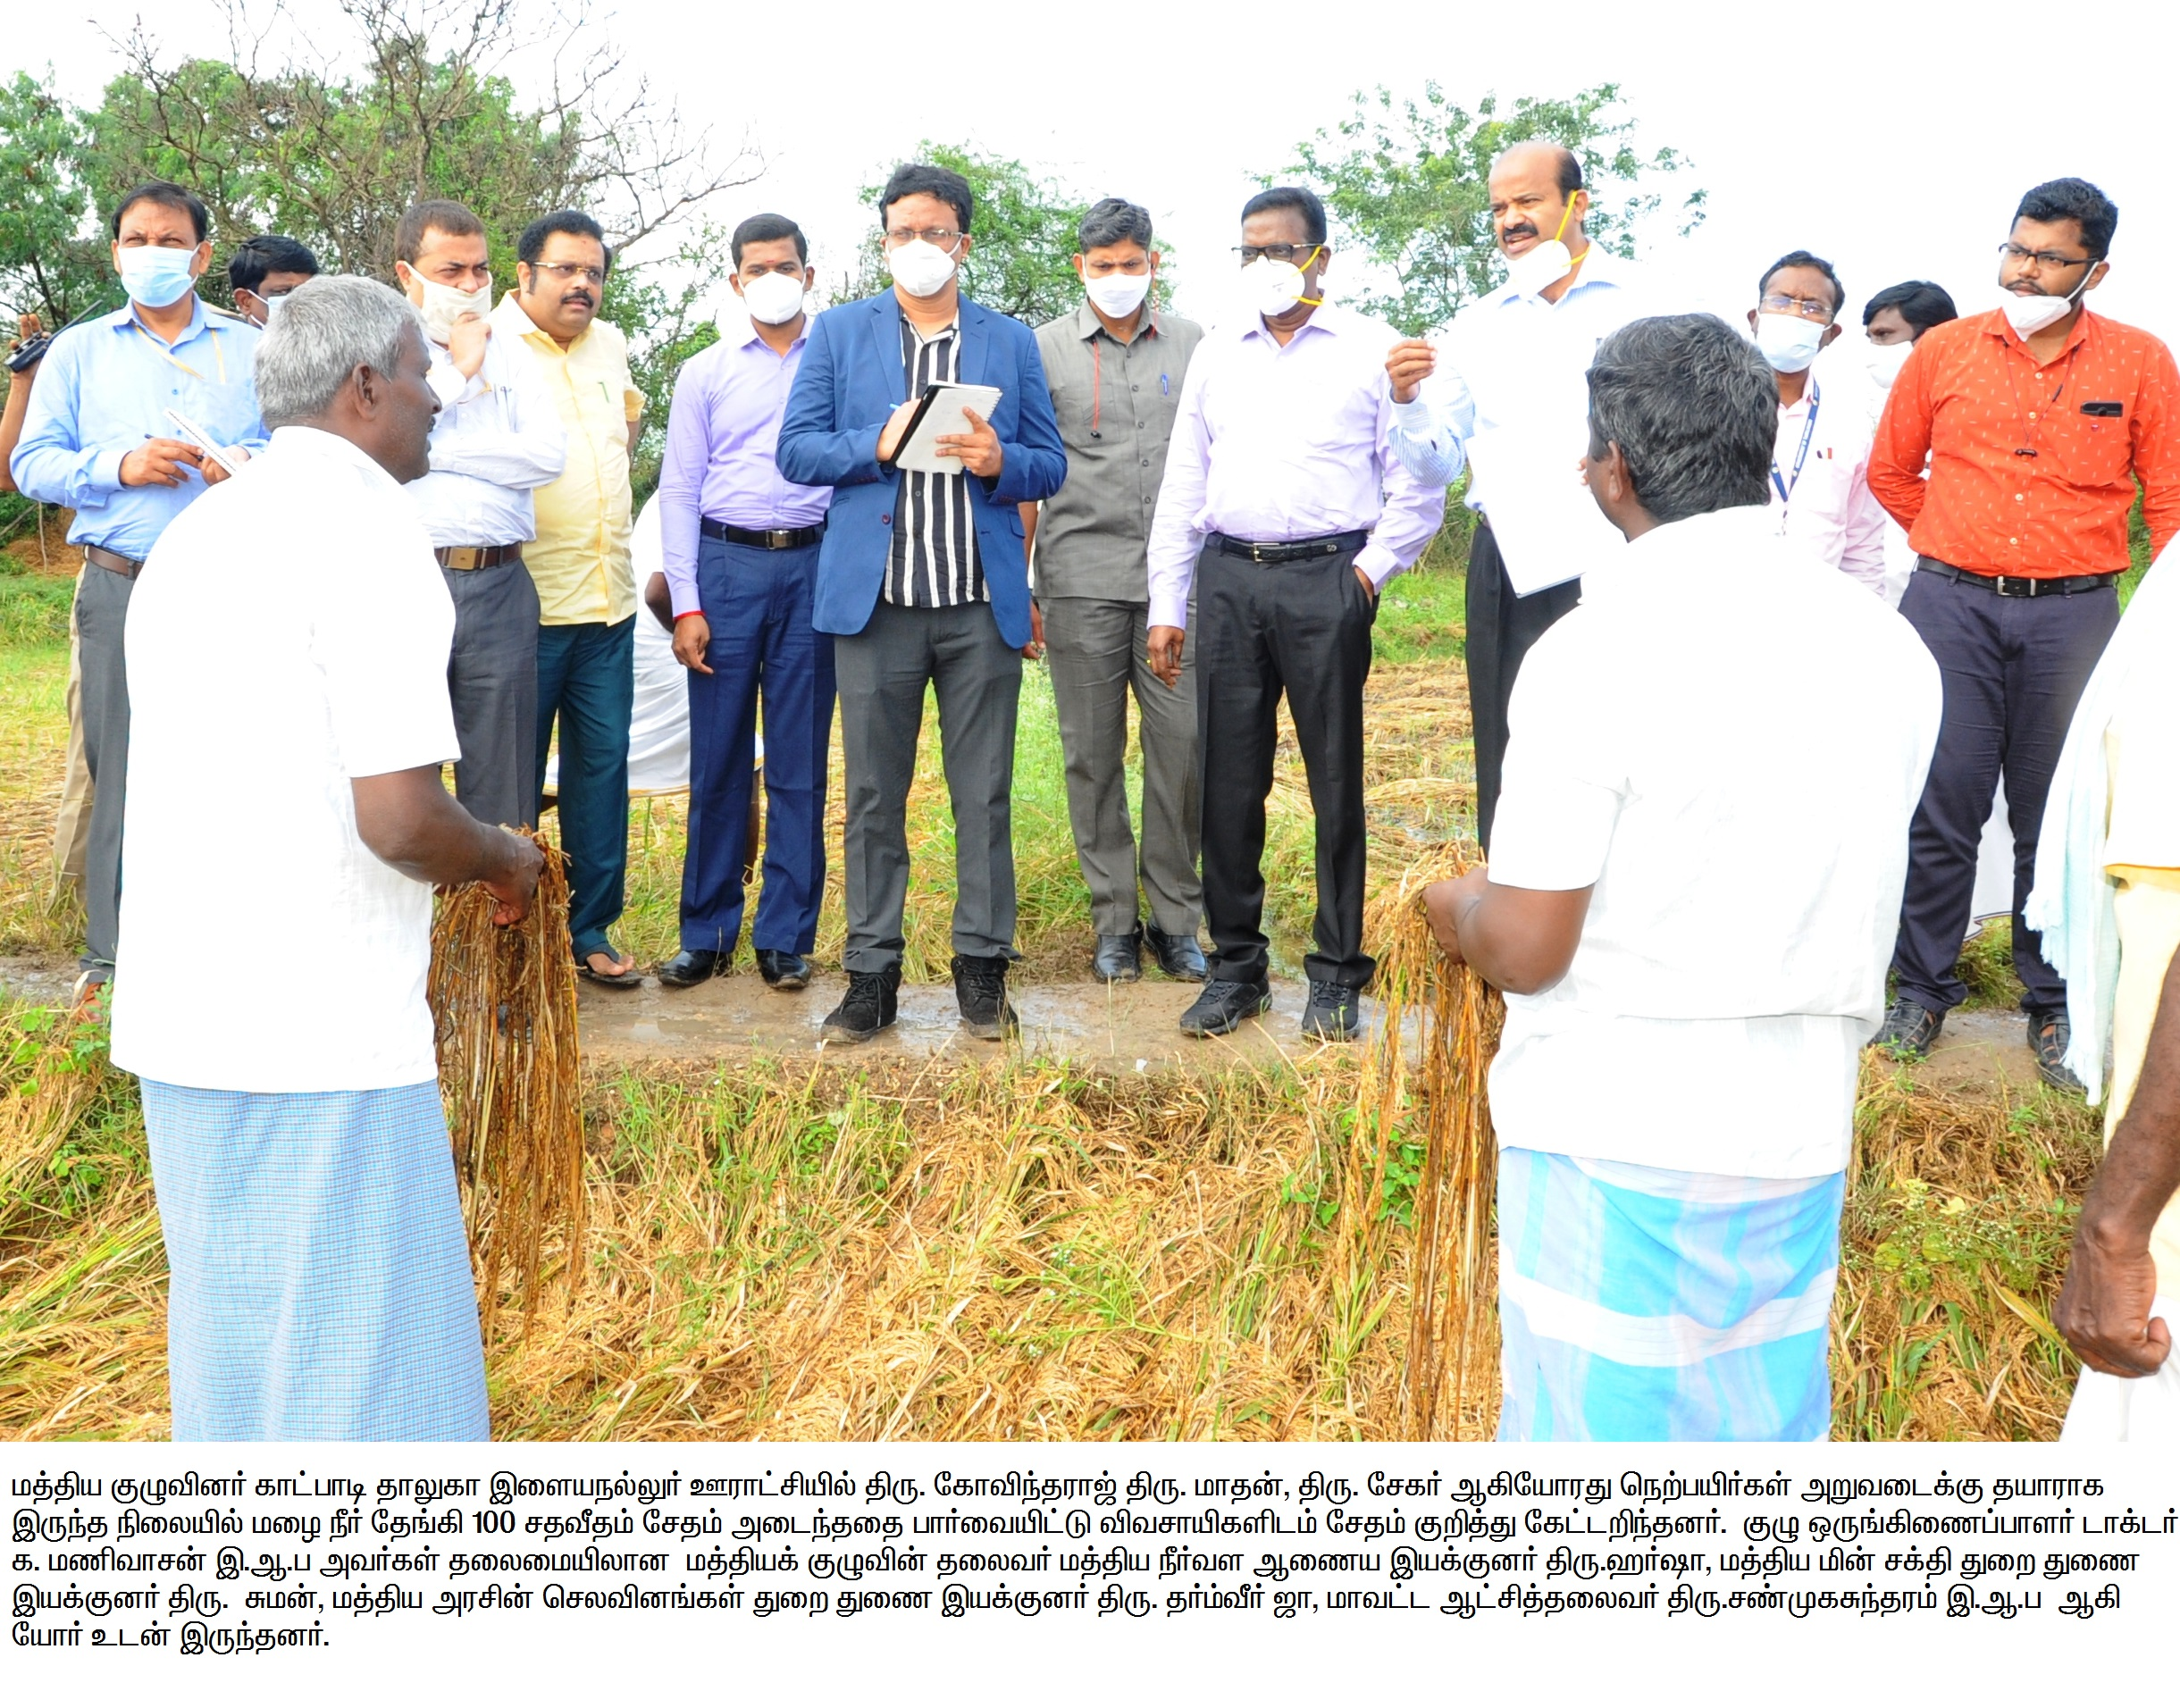 Central Committee Visit to access Nivar Cyclone Damage at Vellore District 07-12-2020